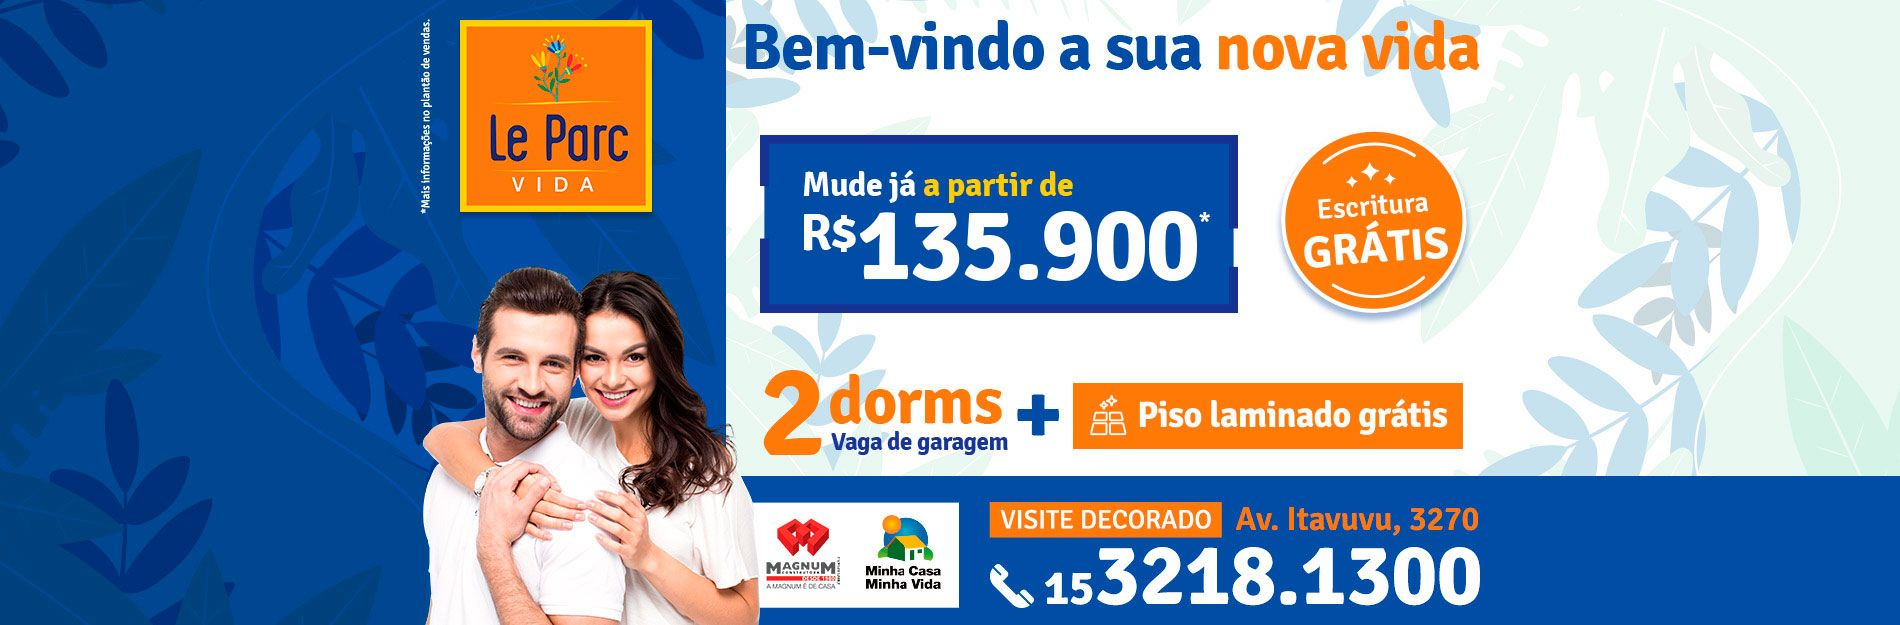 <br /> <b>Notice</b>:  Undefined index: titulo in <b>/home/lgpimove/public_html/inc/slider.php</b> on line <b>19</b><br />